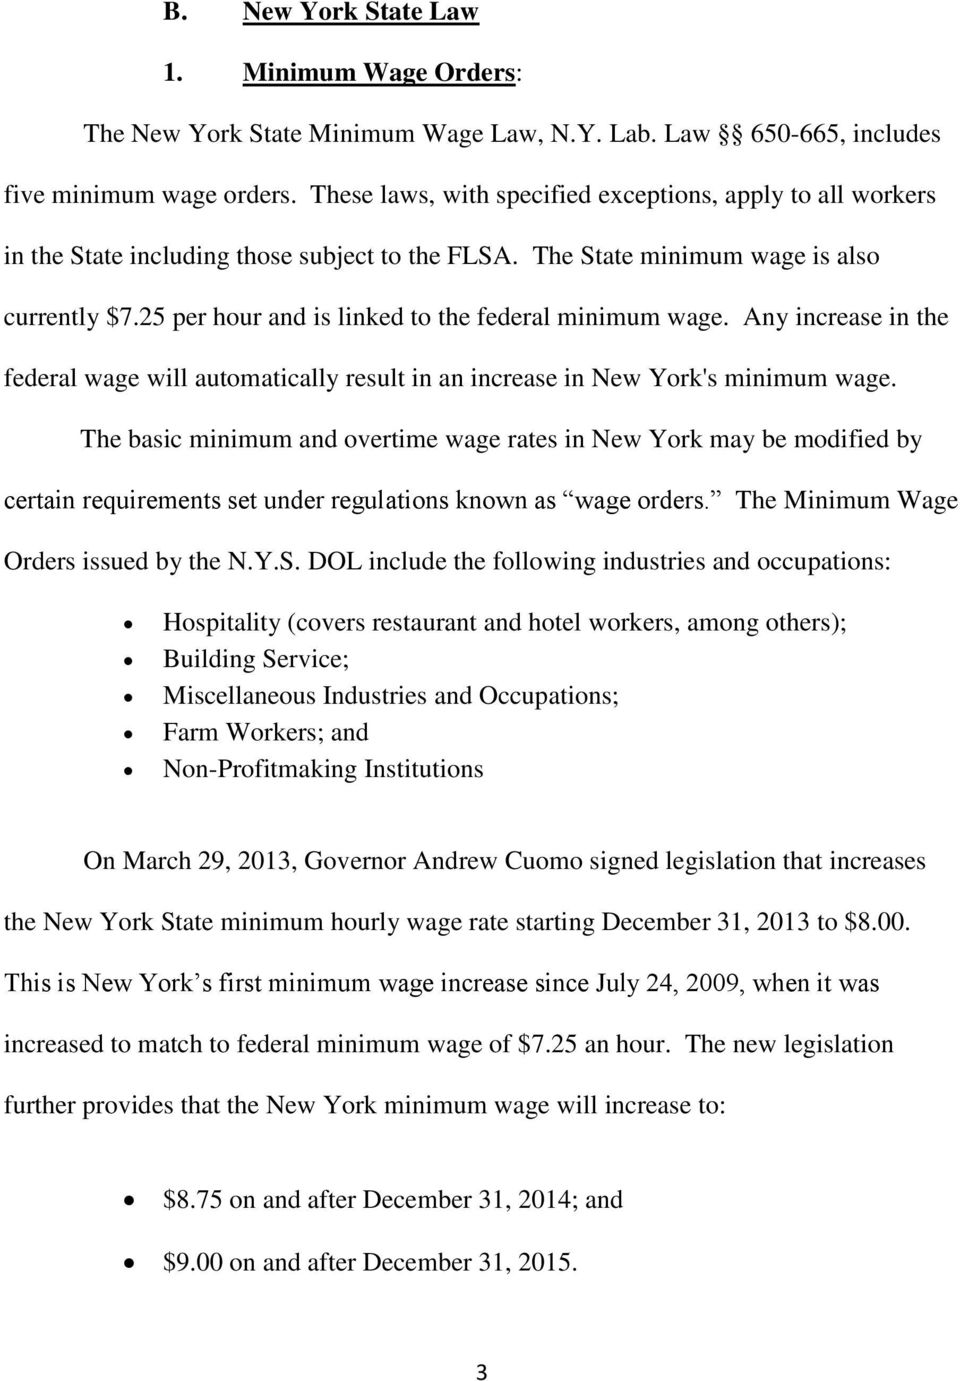 25 per hour and is linked to the federal minimum wage. Any increase in the federal wage will automatically result in an increase in New York's minimum wage.